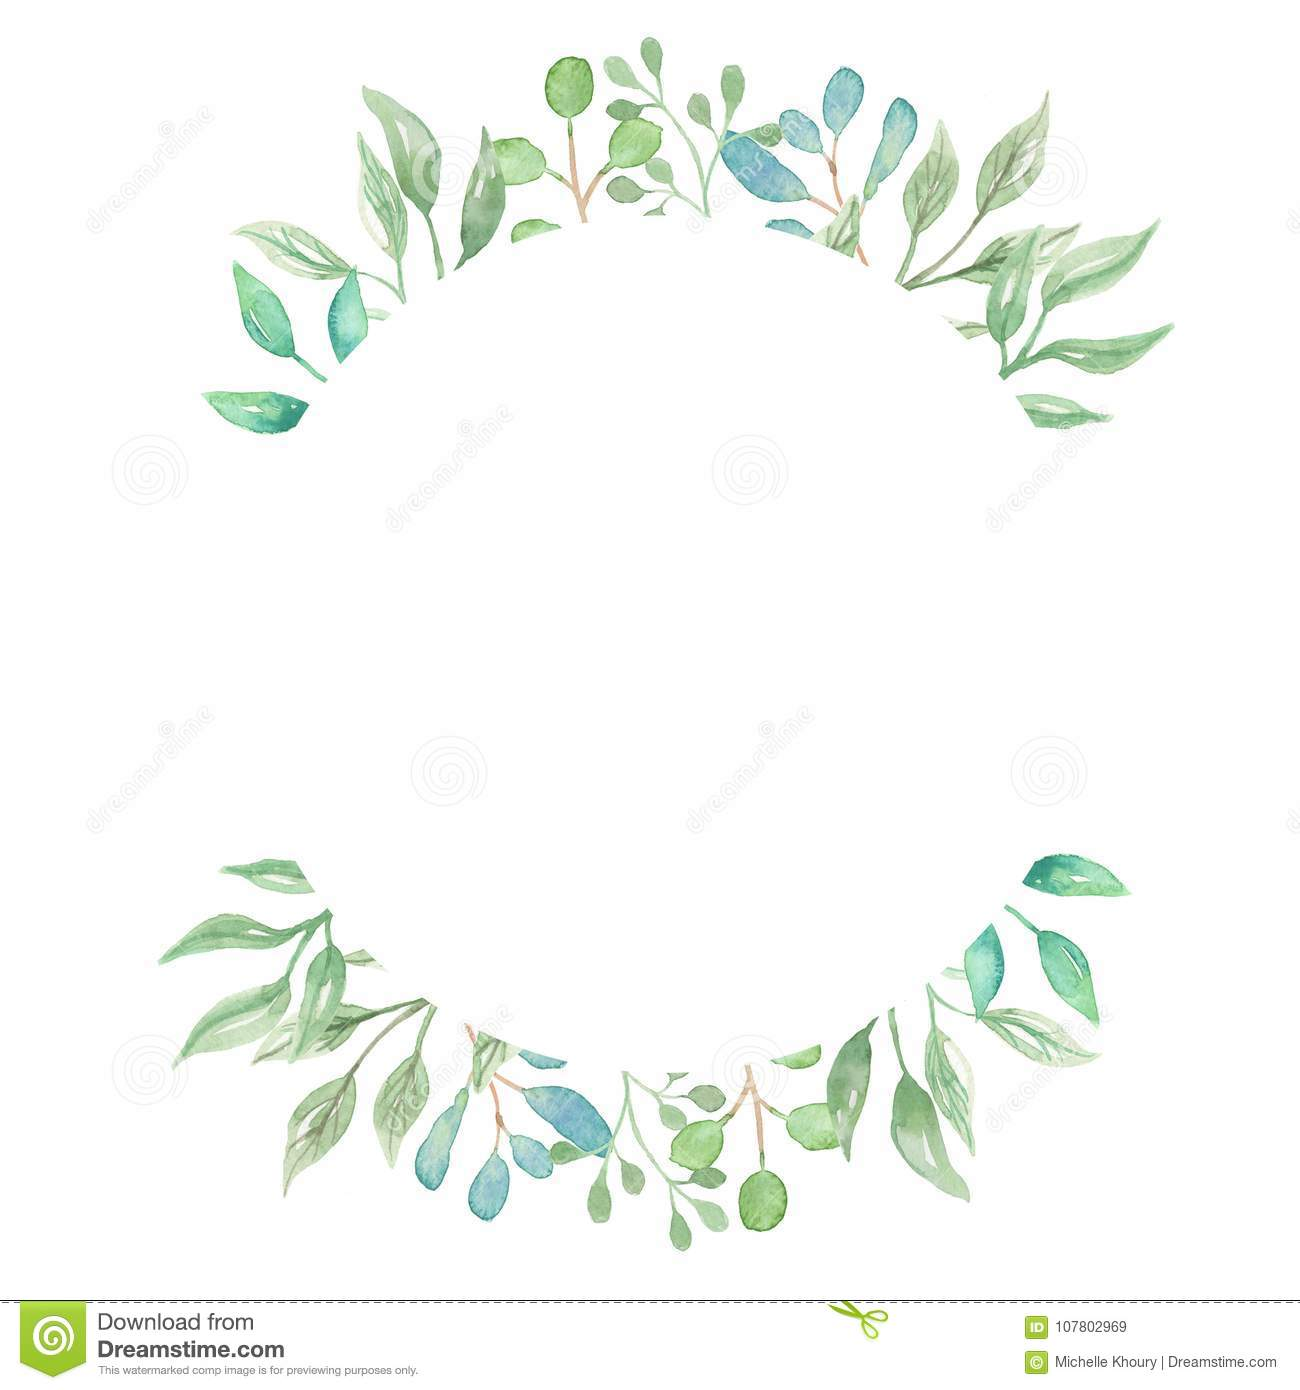 Greenery clipart free 7 » Clipart Station.